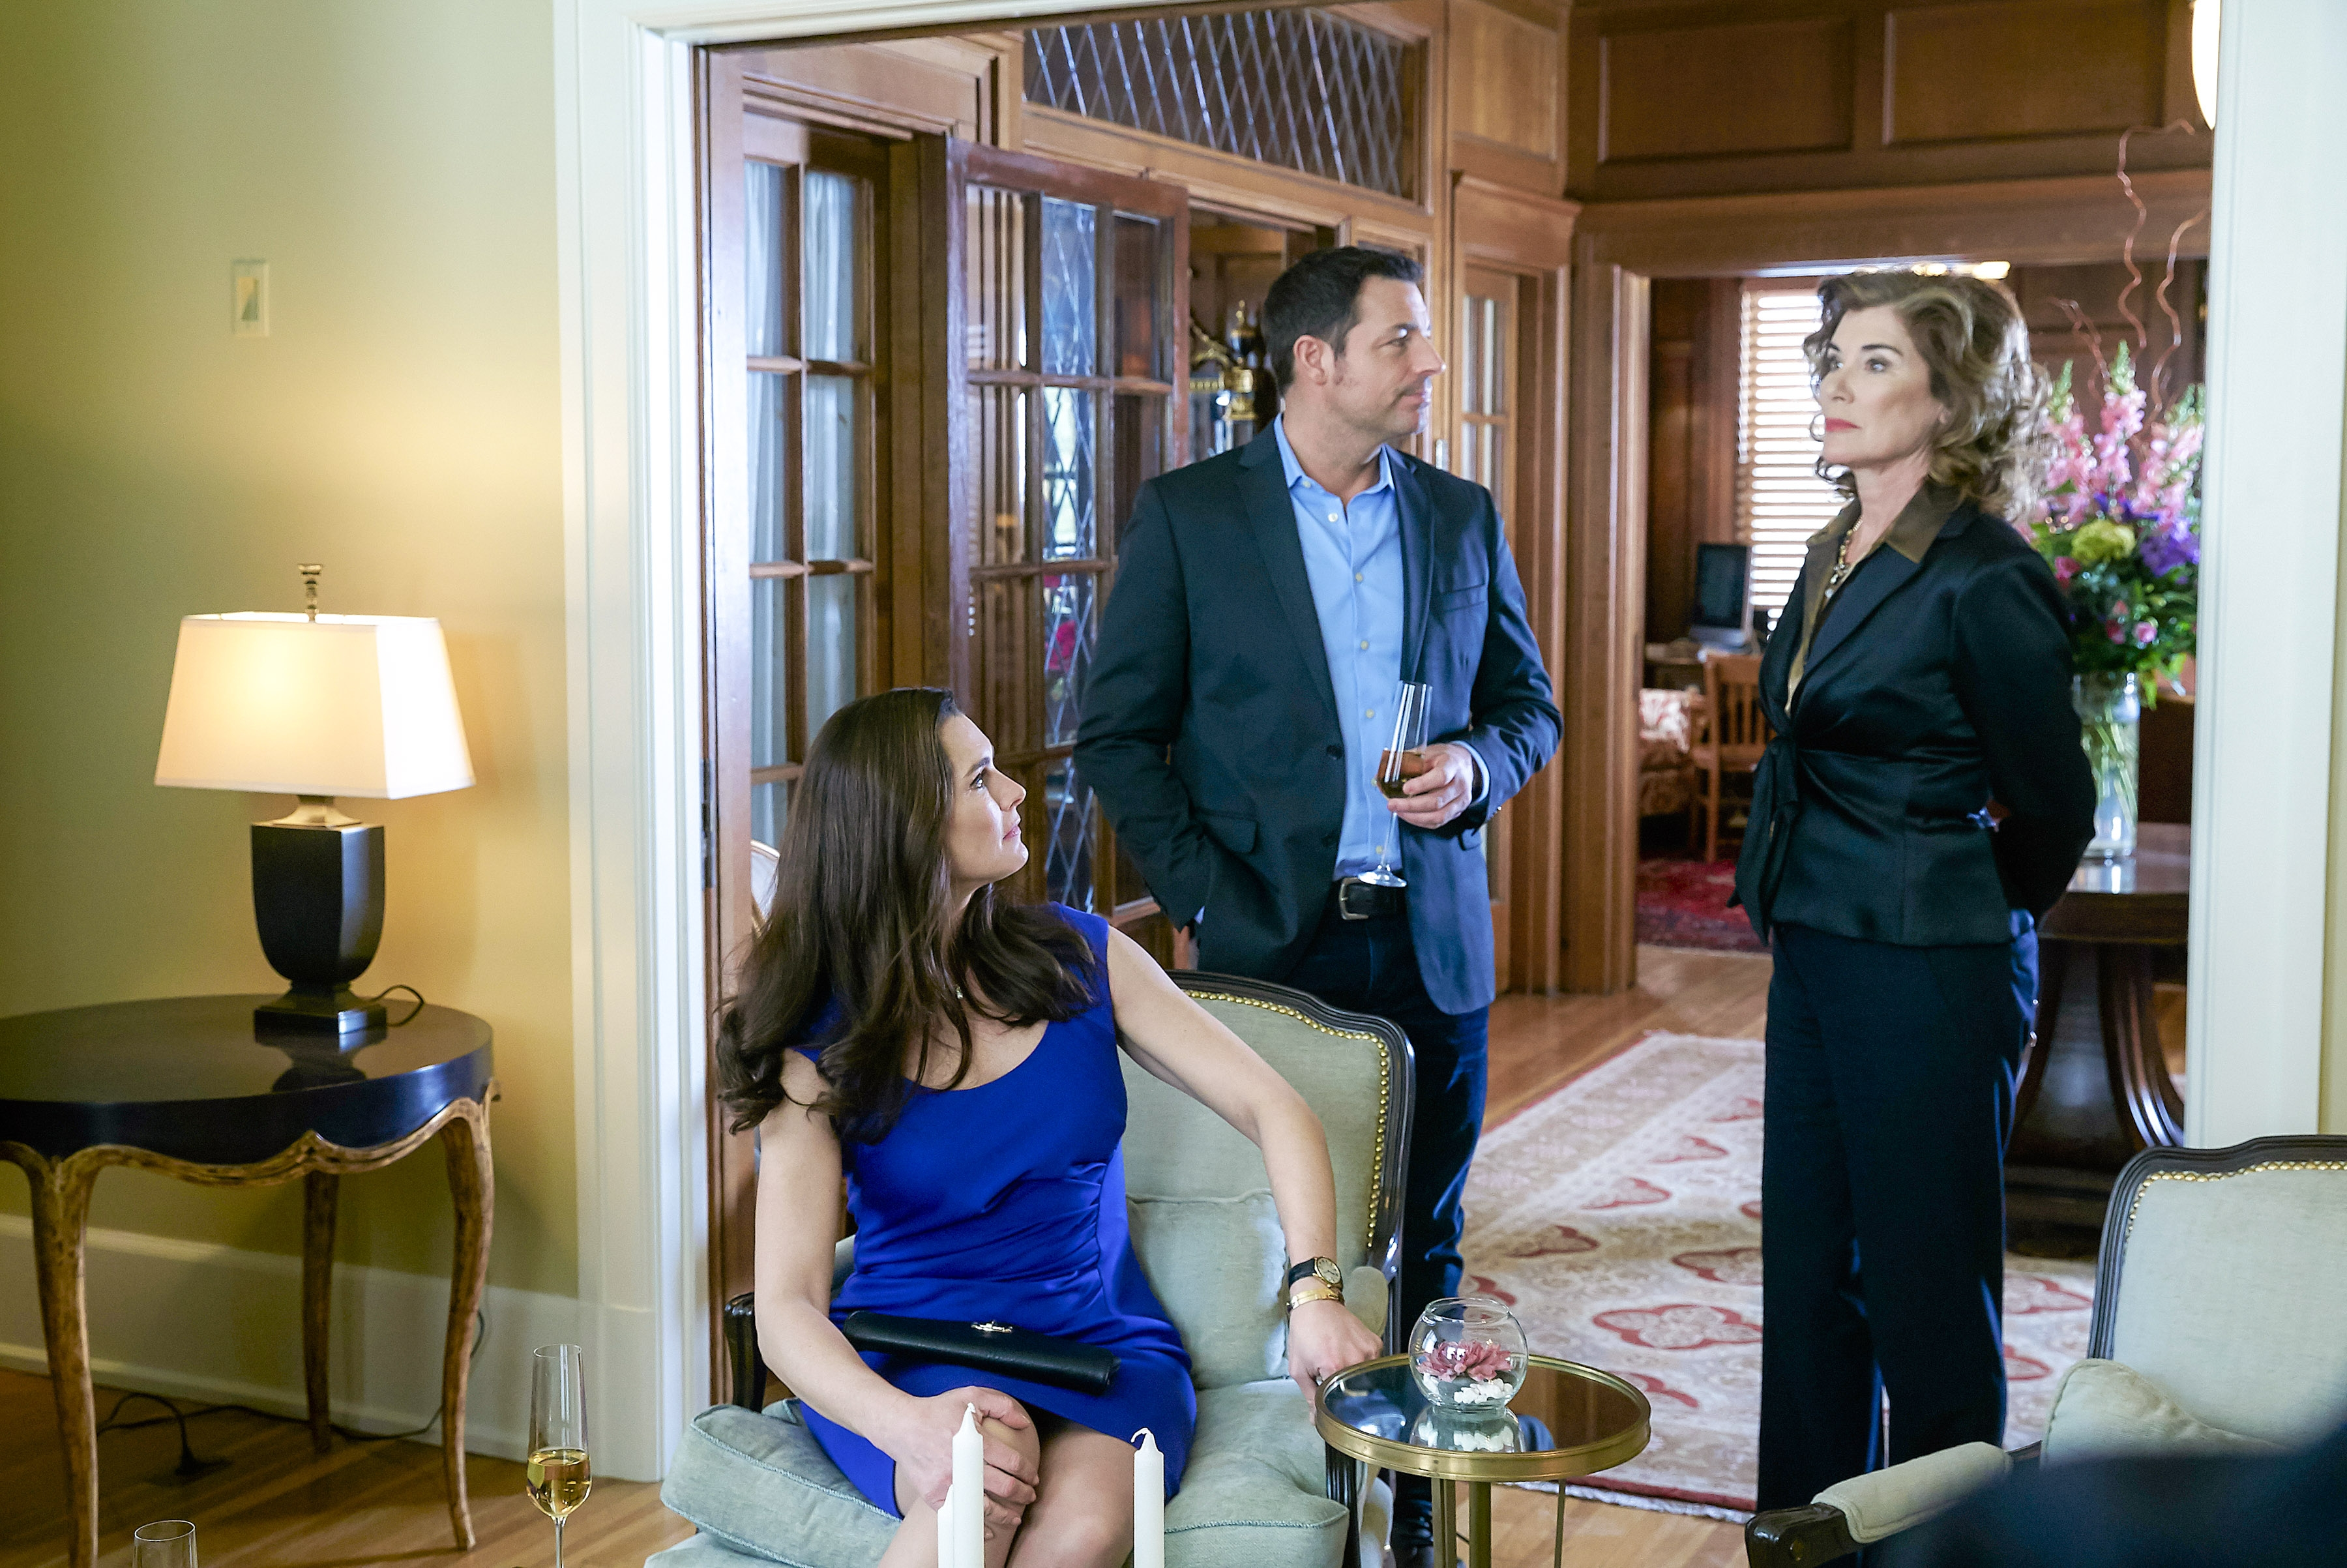 Photo: Brooke Shields, Brennan Elliott, Sonja Smits Credit: Copyright 2016 Crown Media United States LLC/Photographer: Shane Mahood